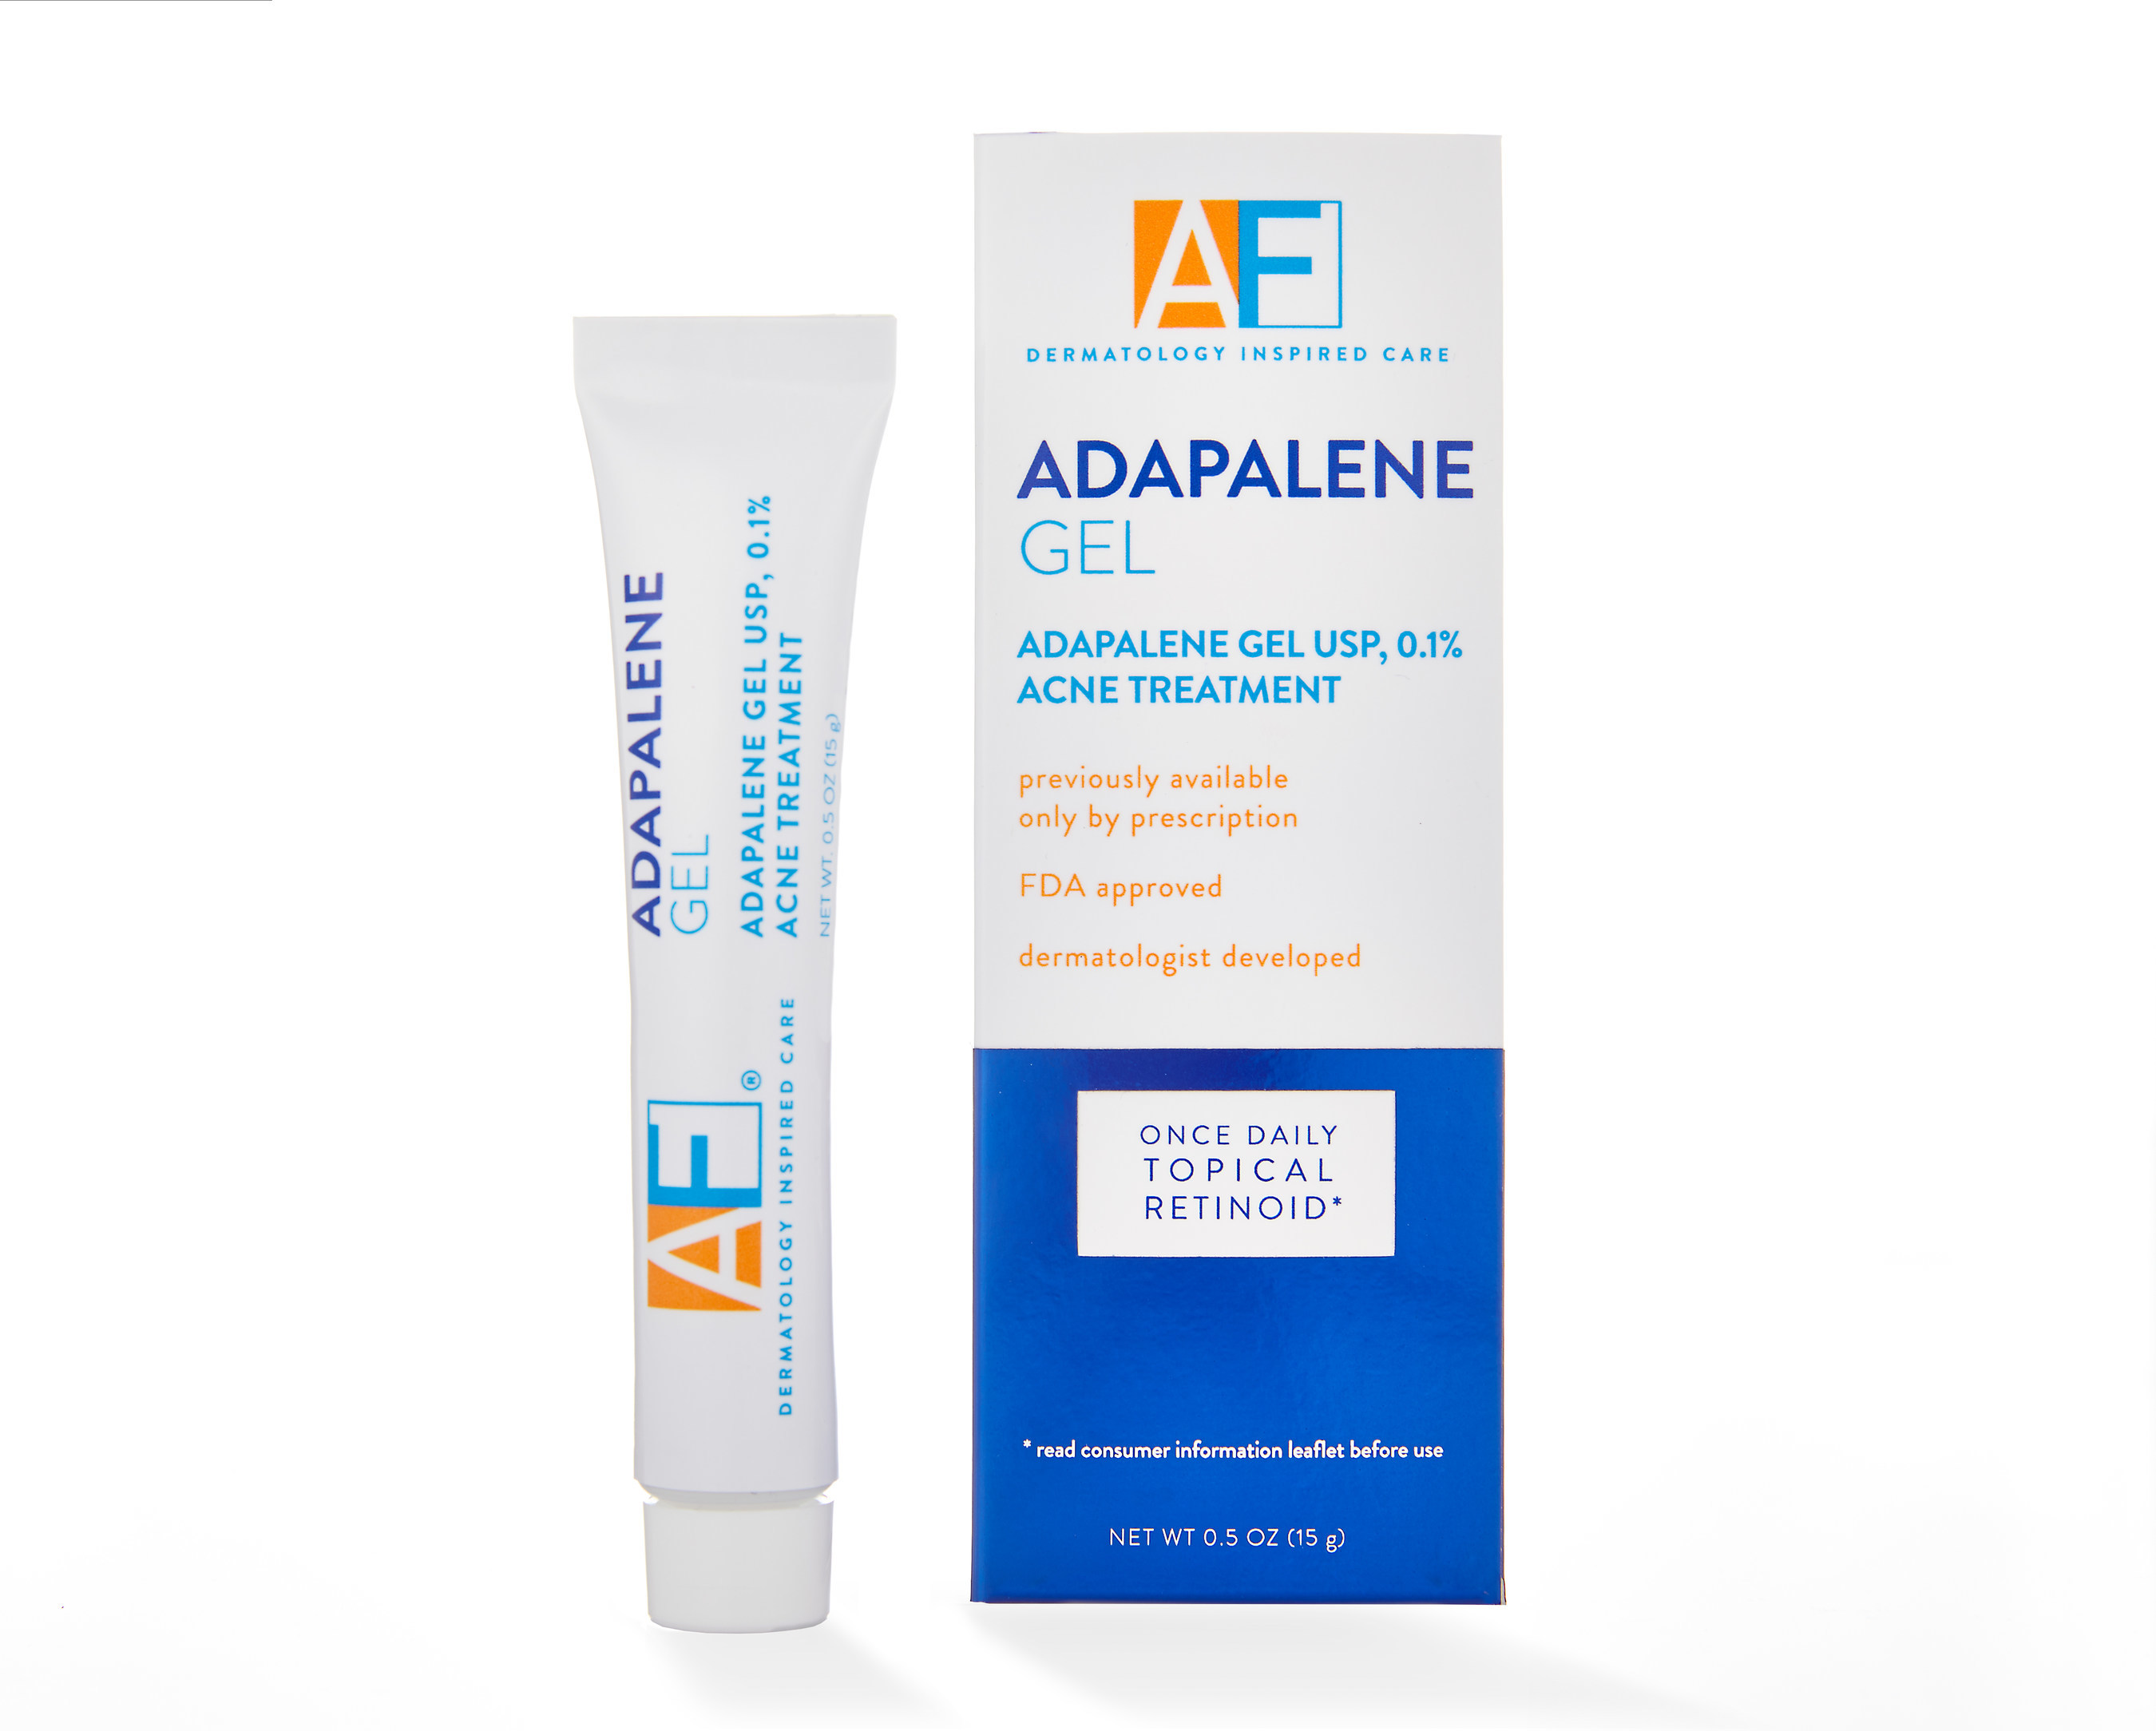 Acnefree Launches Their Adapalene Gel Retinoid Acne Treatment For